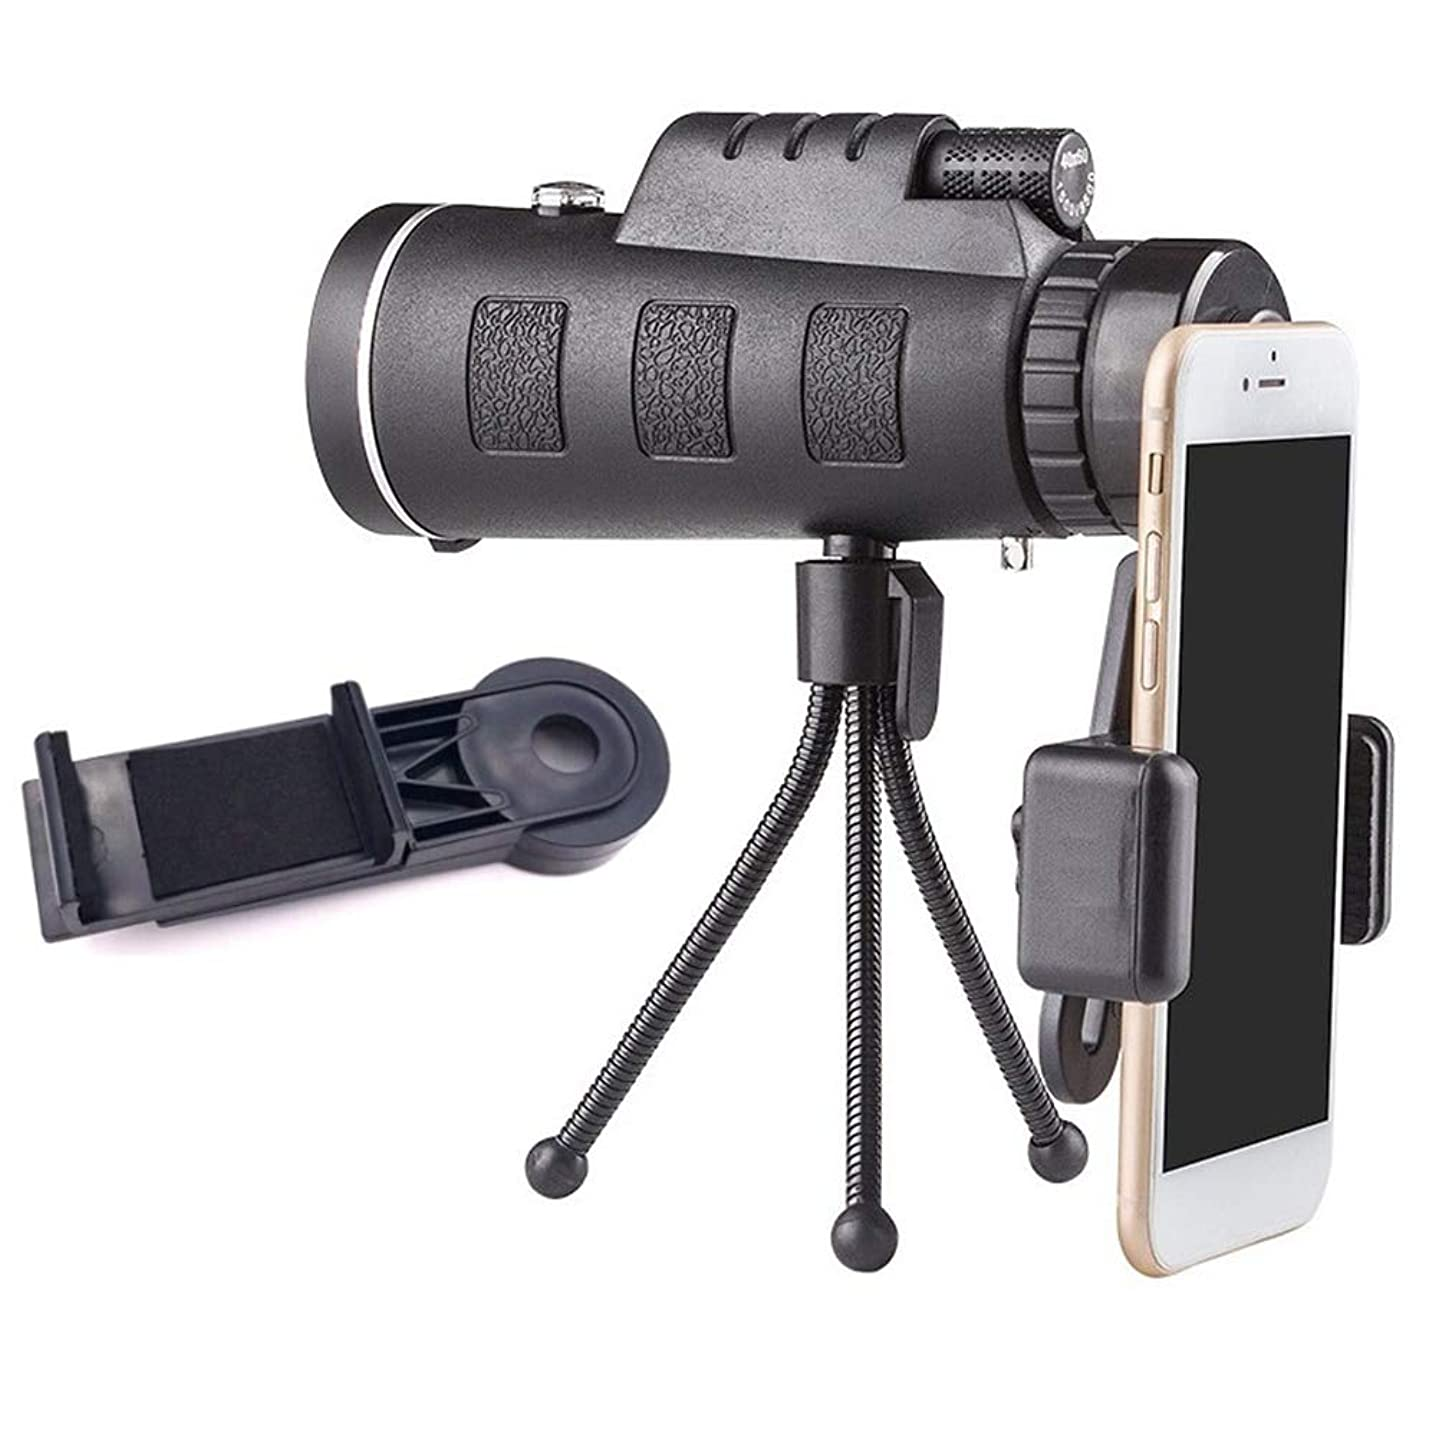 Phone Lens Zoom Len Mobile Phone Lens 40x60 Telescope Scope for iPhone X Samsung S9 Smartphone Camera Camping Hiking Fishing with Compass